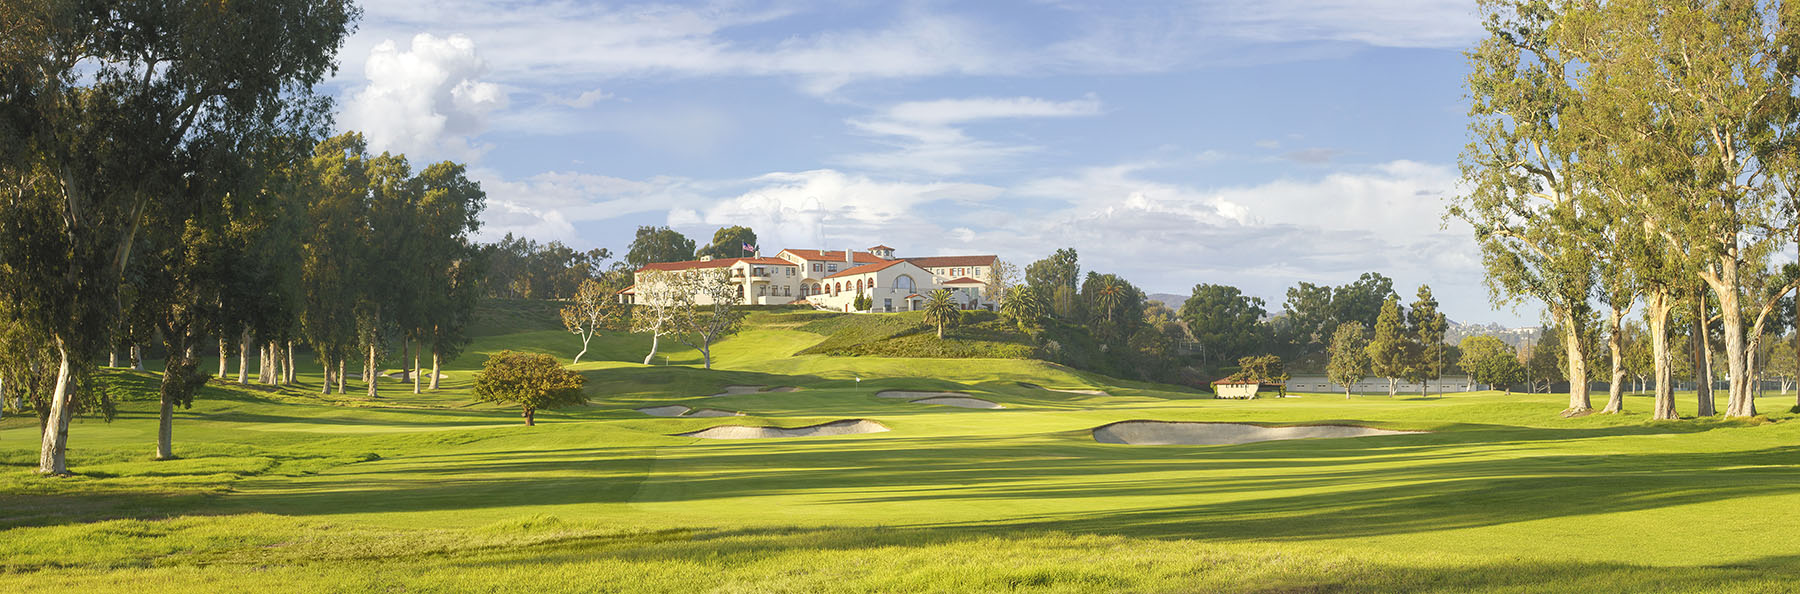 Golf Course Image - Riviera Country Club No. 9